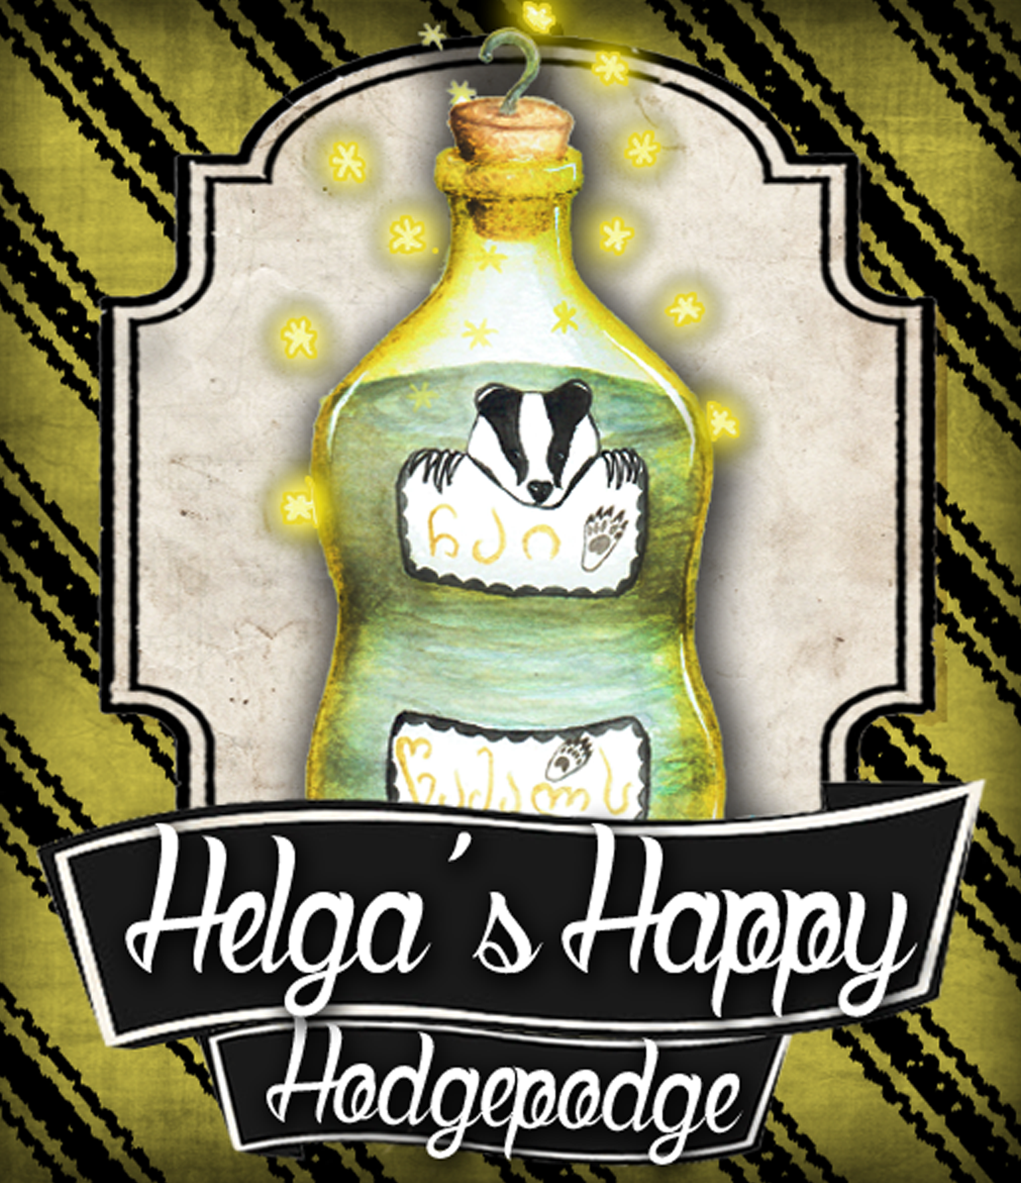 Helga's Happy Hodgepodge